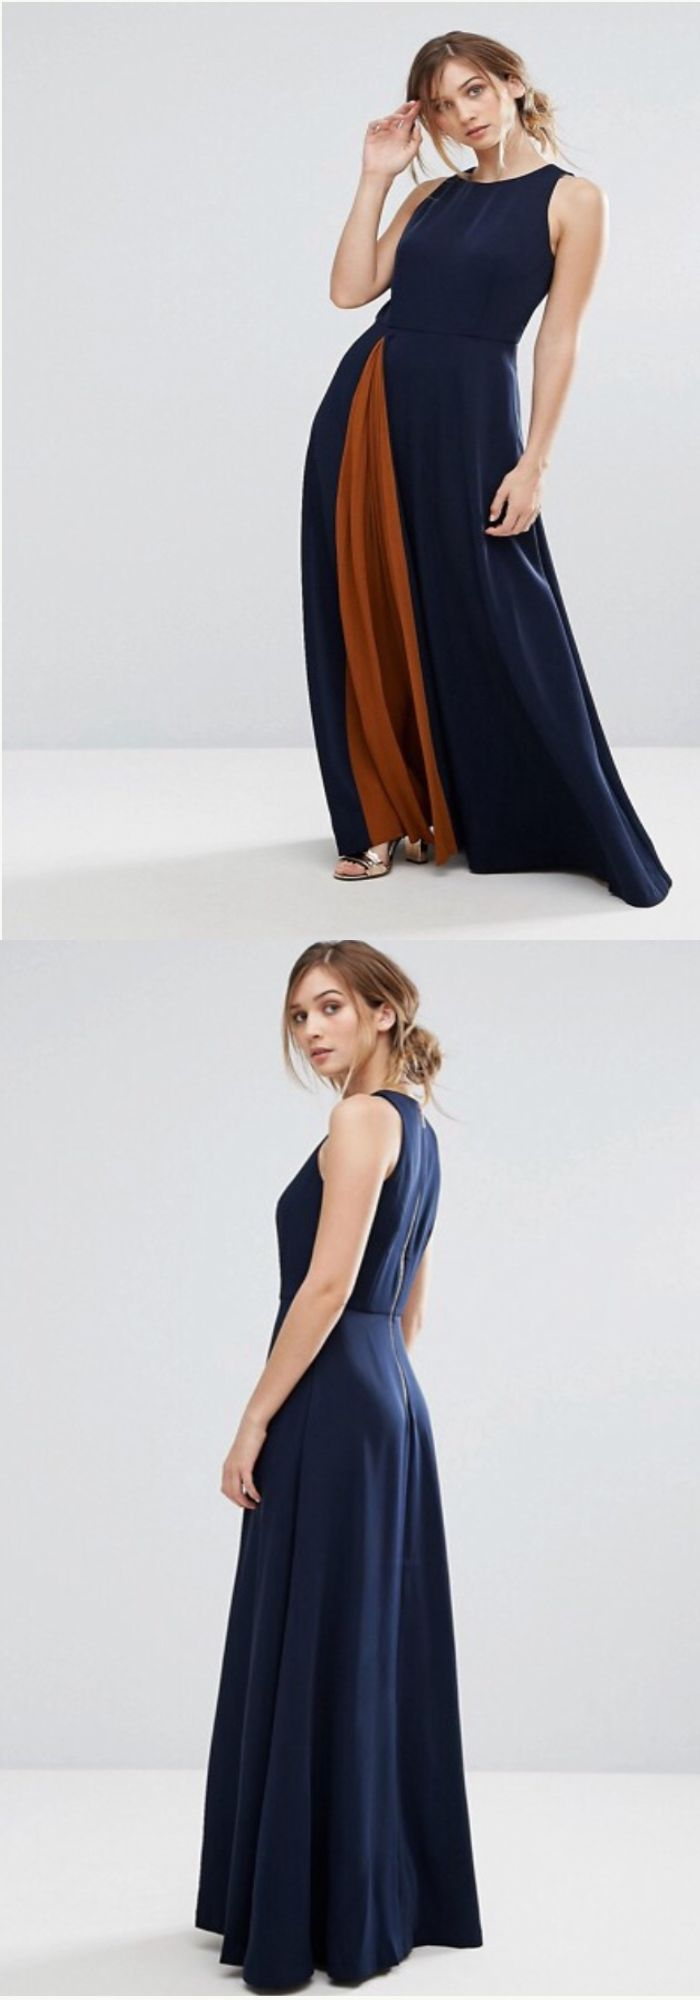 Contemporary Style Ted Baker contrast Pleat  Maxi Dress, stylish and fashionable evening gown inspiration for stylish women #ad #affiliatelink #tedbaker #eveninggown #stylish #longdress #pleated #maxi